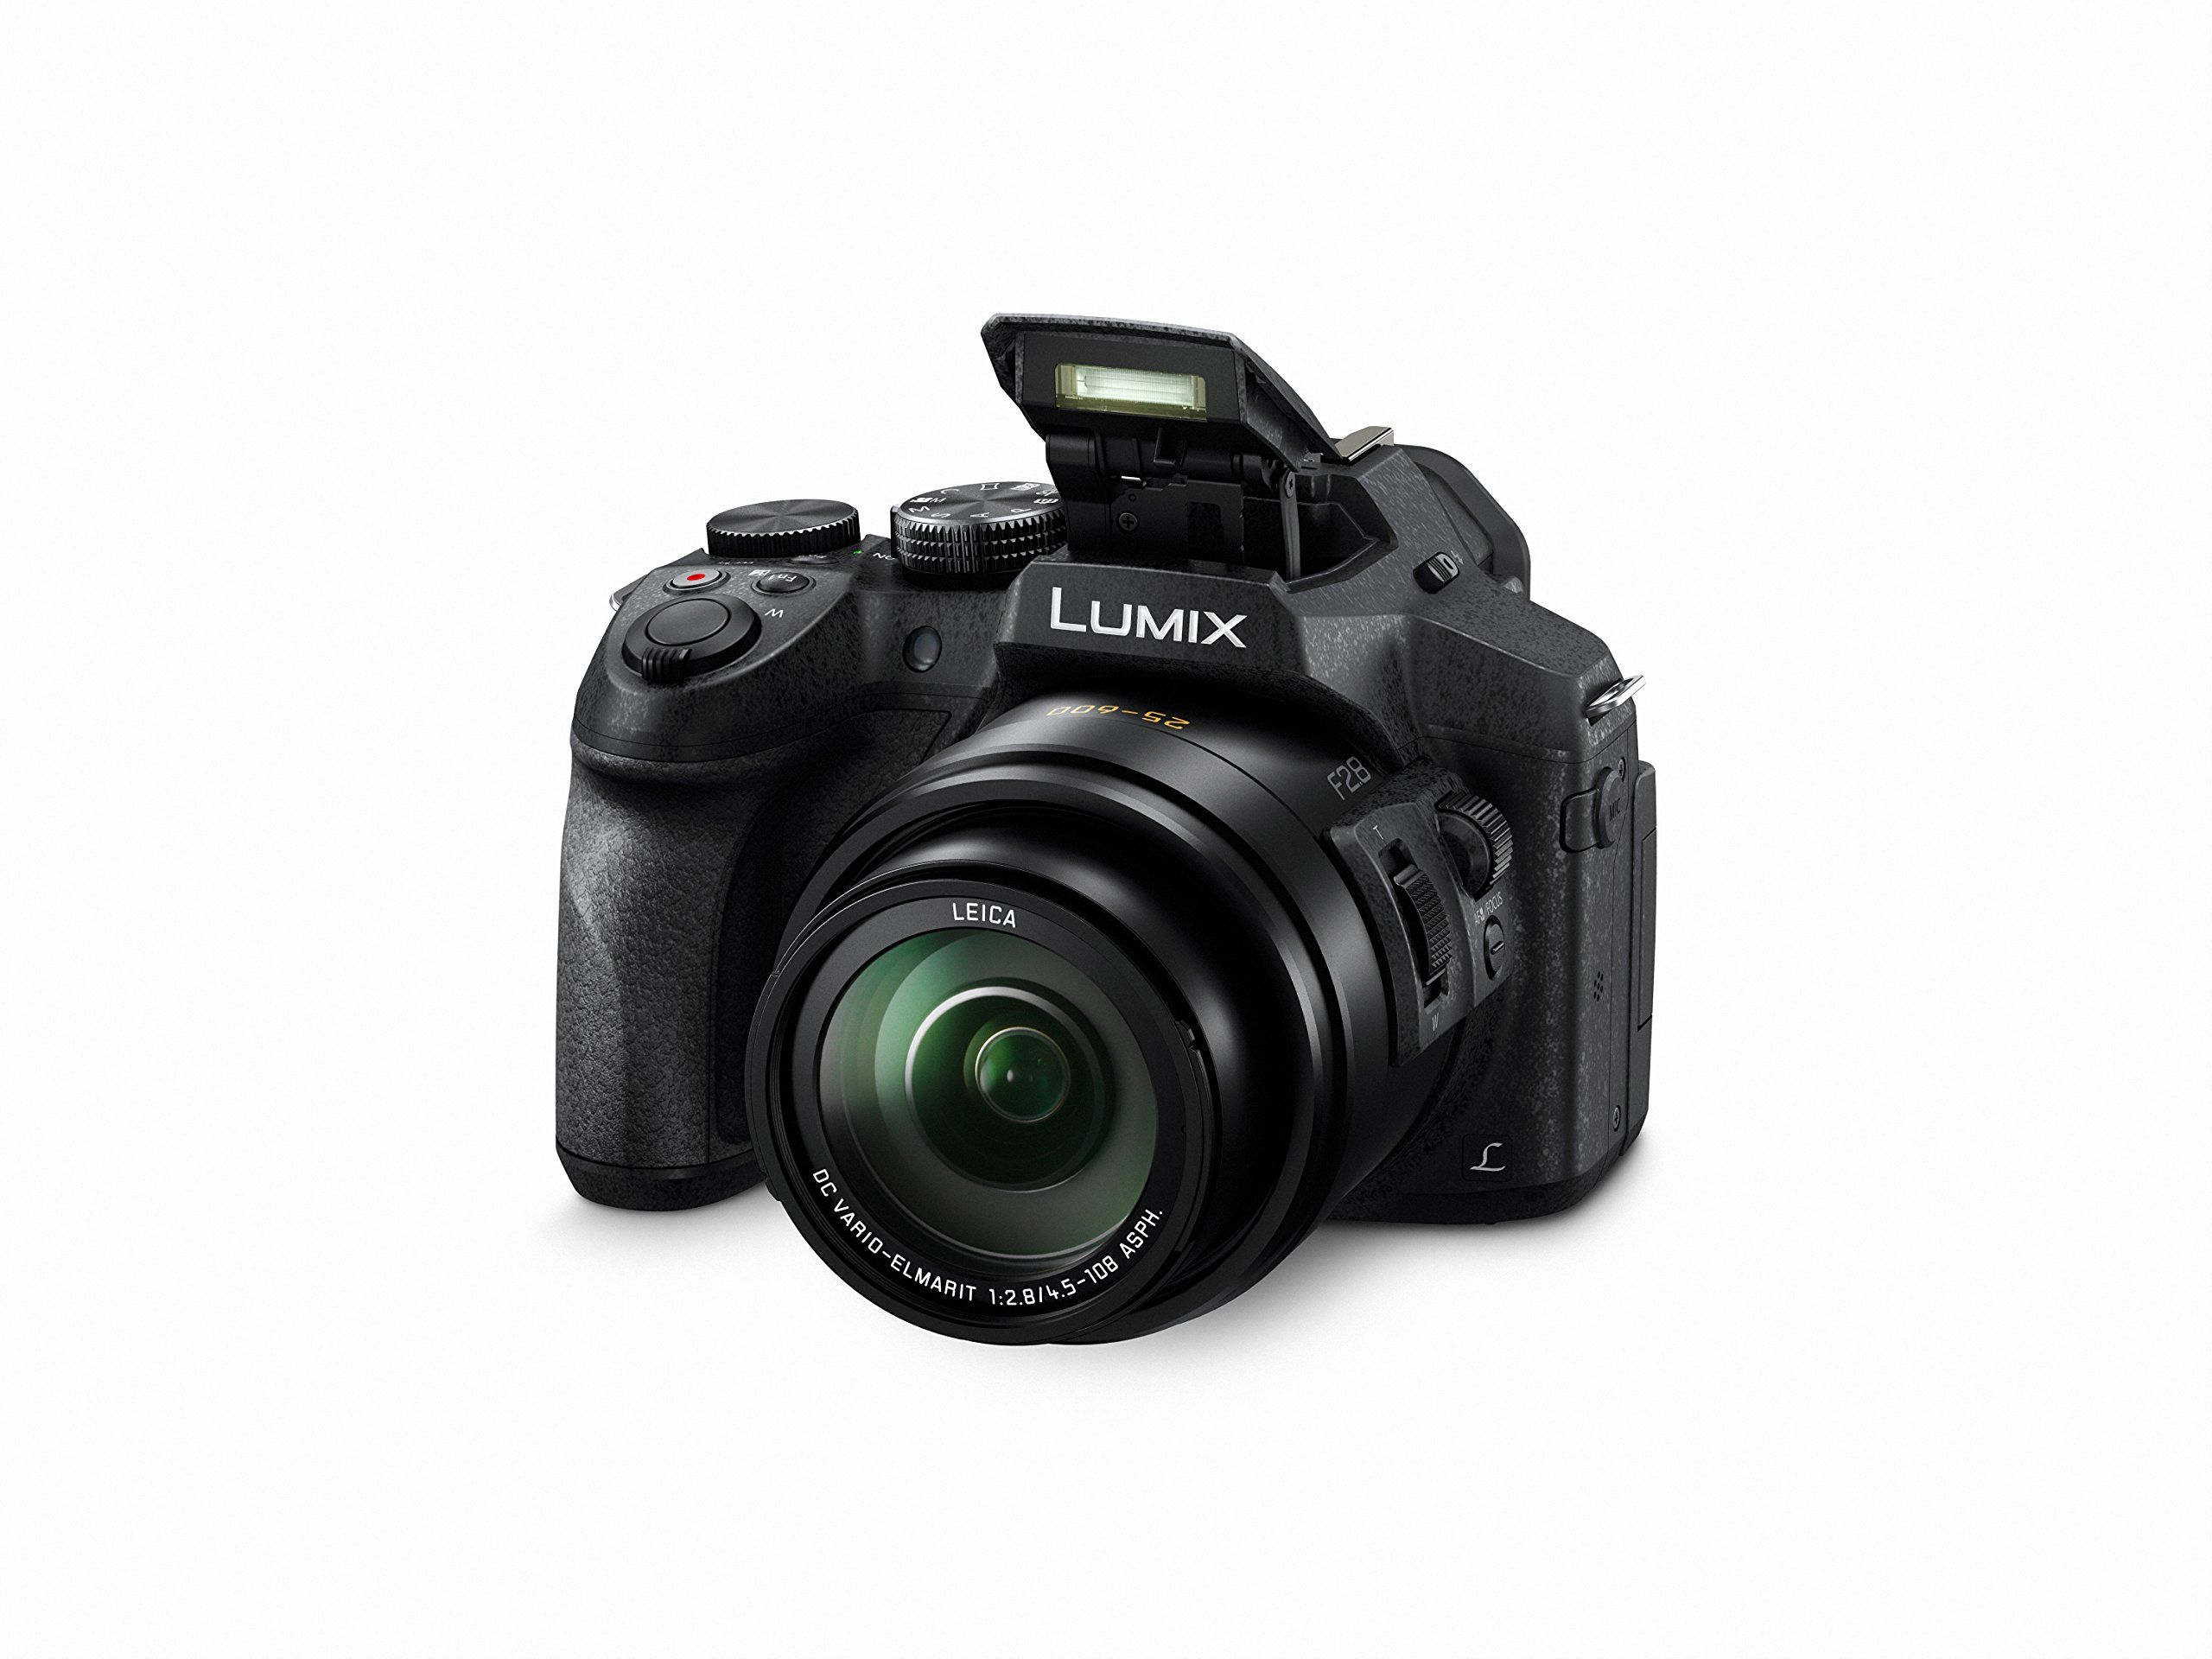 Panasonic Lumix Dmcfz300k 12 1 Megapixel 1 2 3inch Sensor 4k Video Splash Point And Shoot Camera Camera With Flip Screen Panasonic Lumix